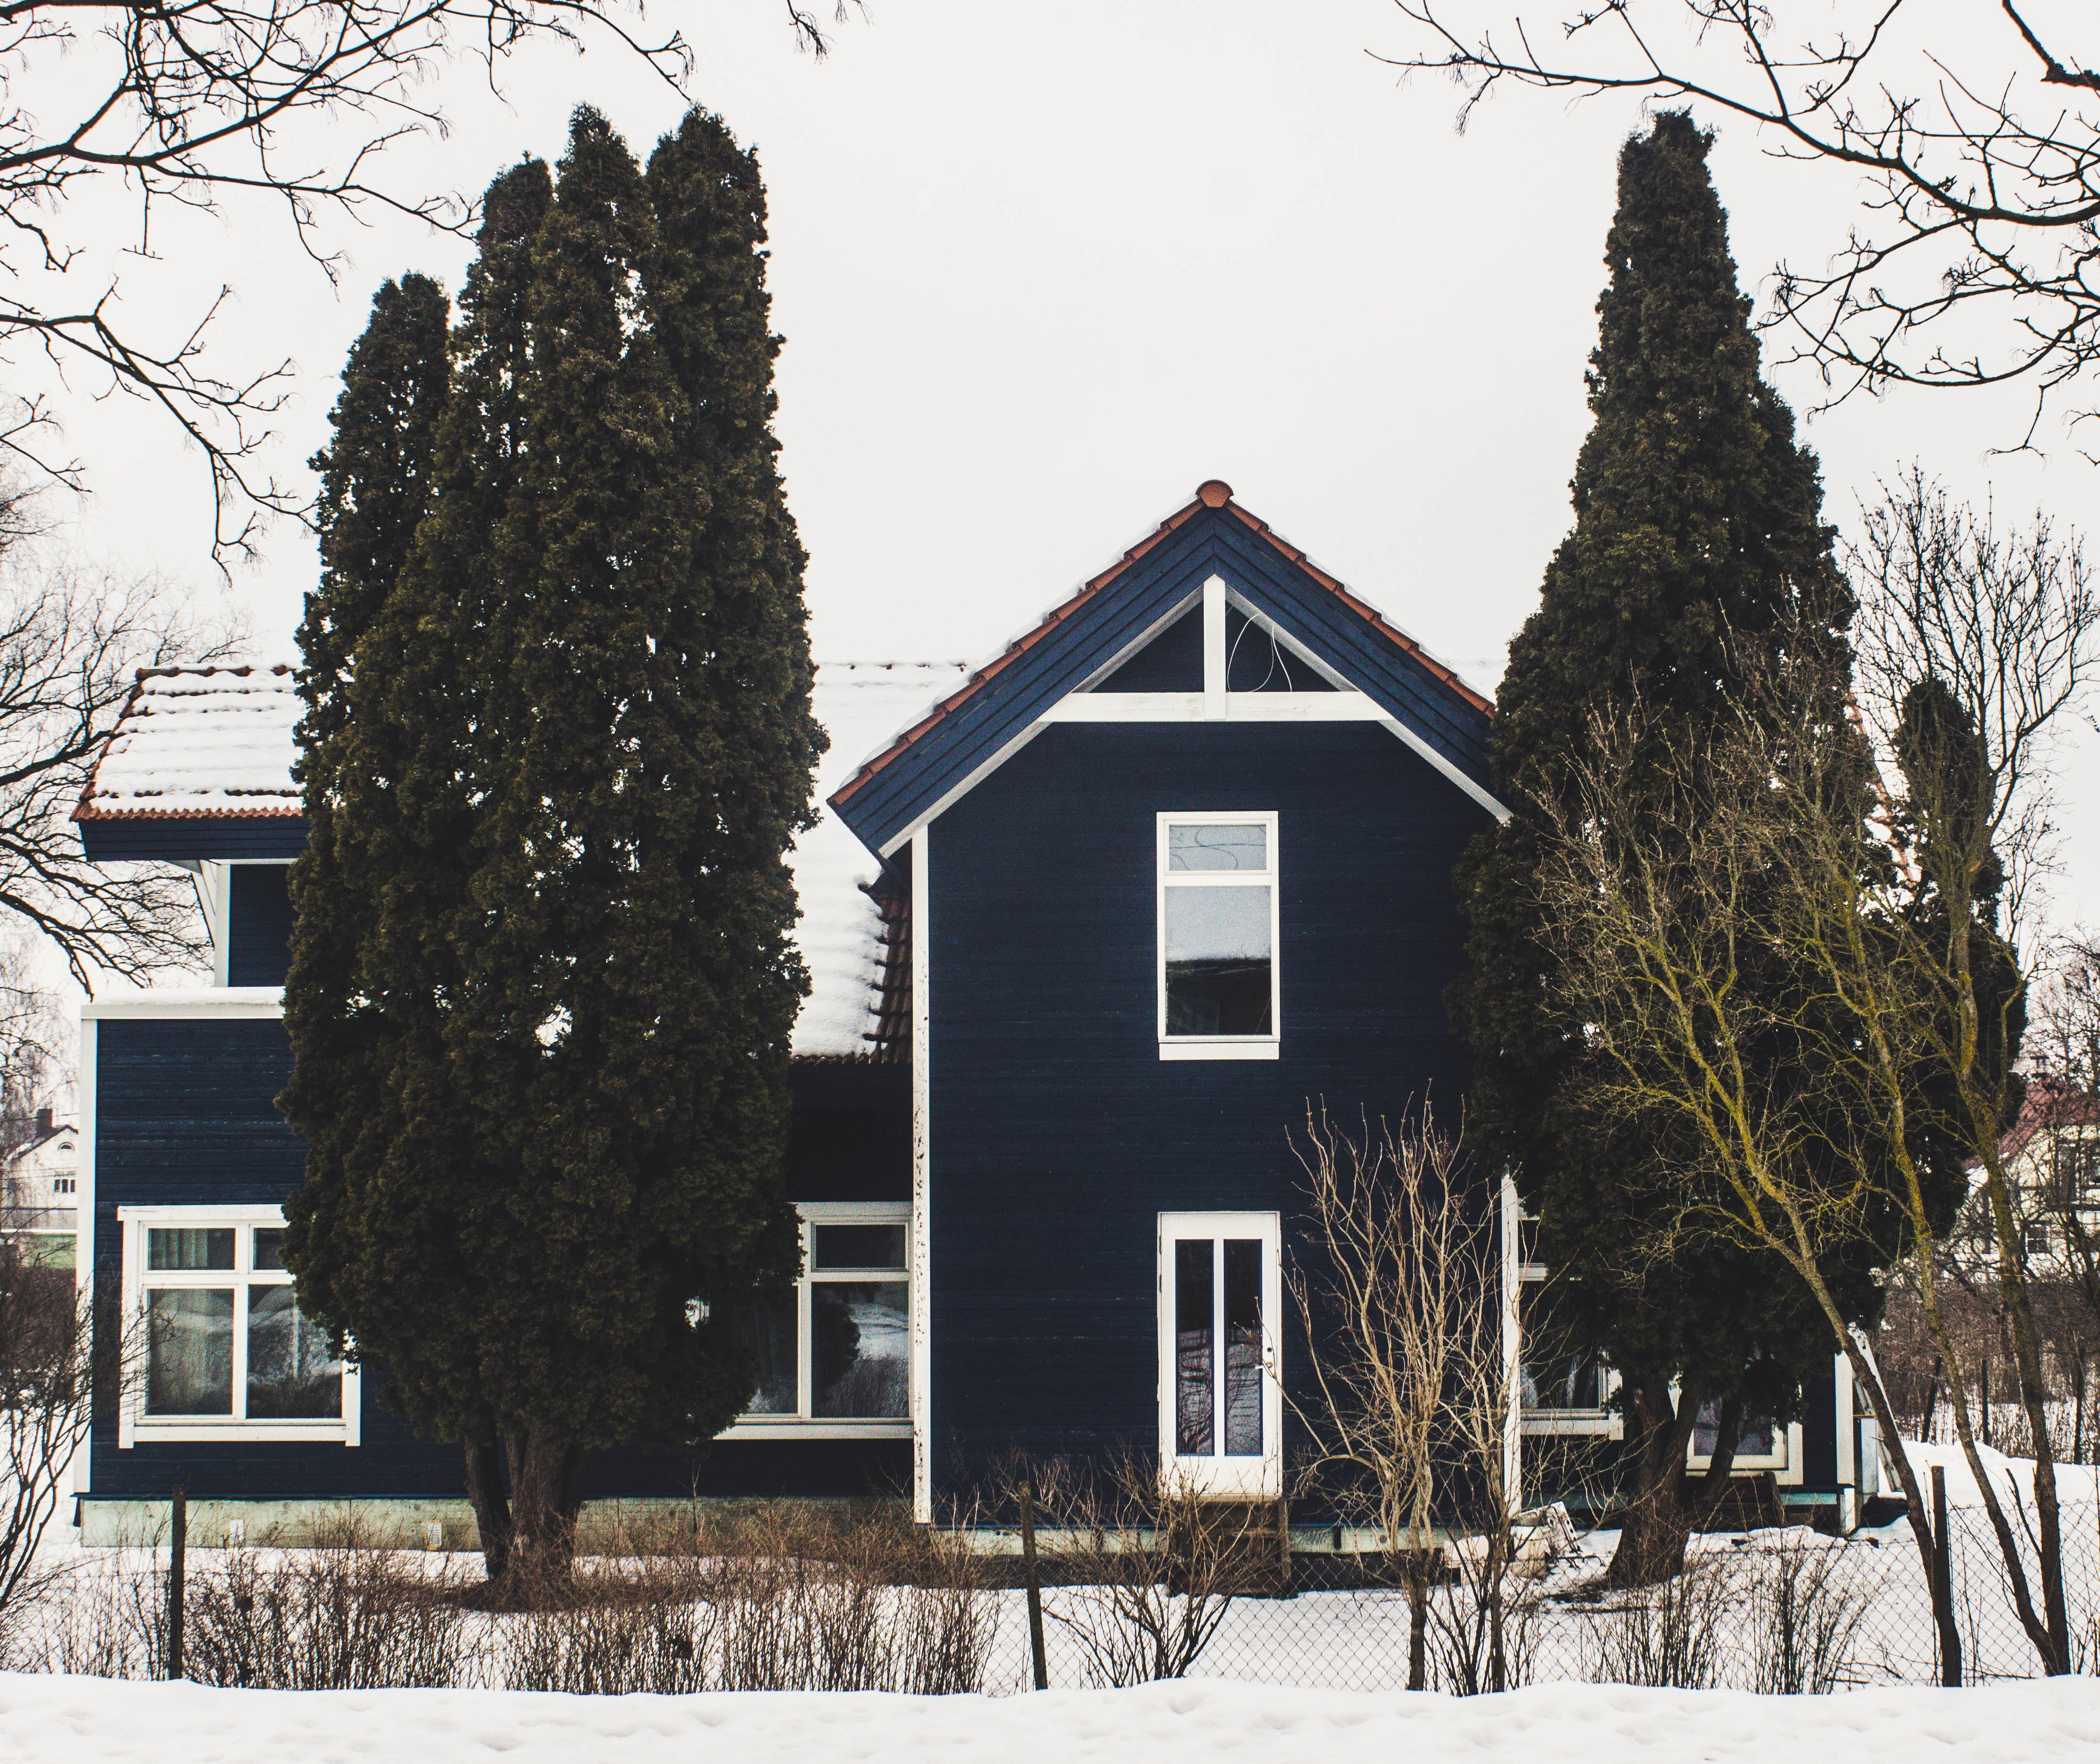 Photography of a House During Winter, Architecture, Outdoors, Winter landscape, Winter, HQ Photo